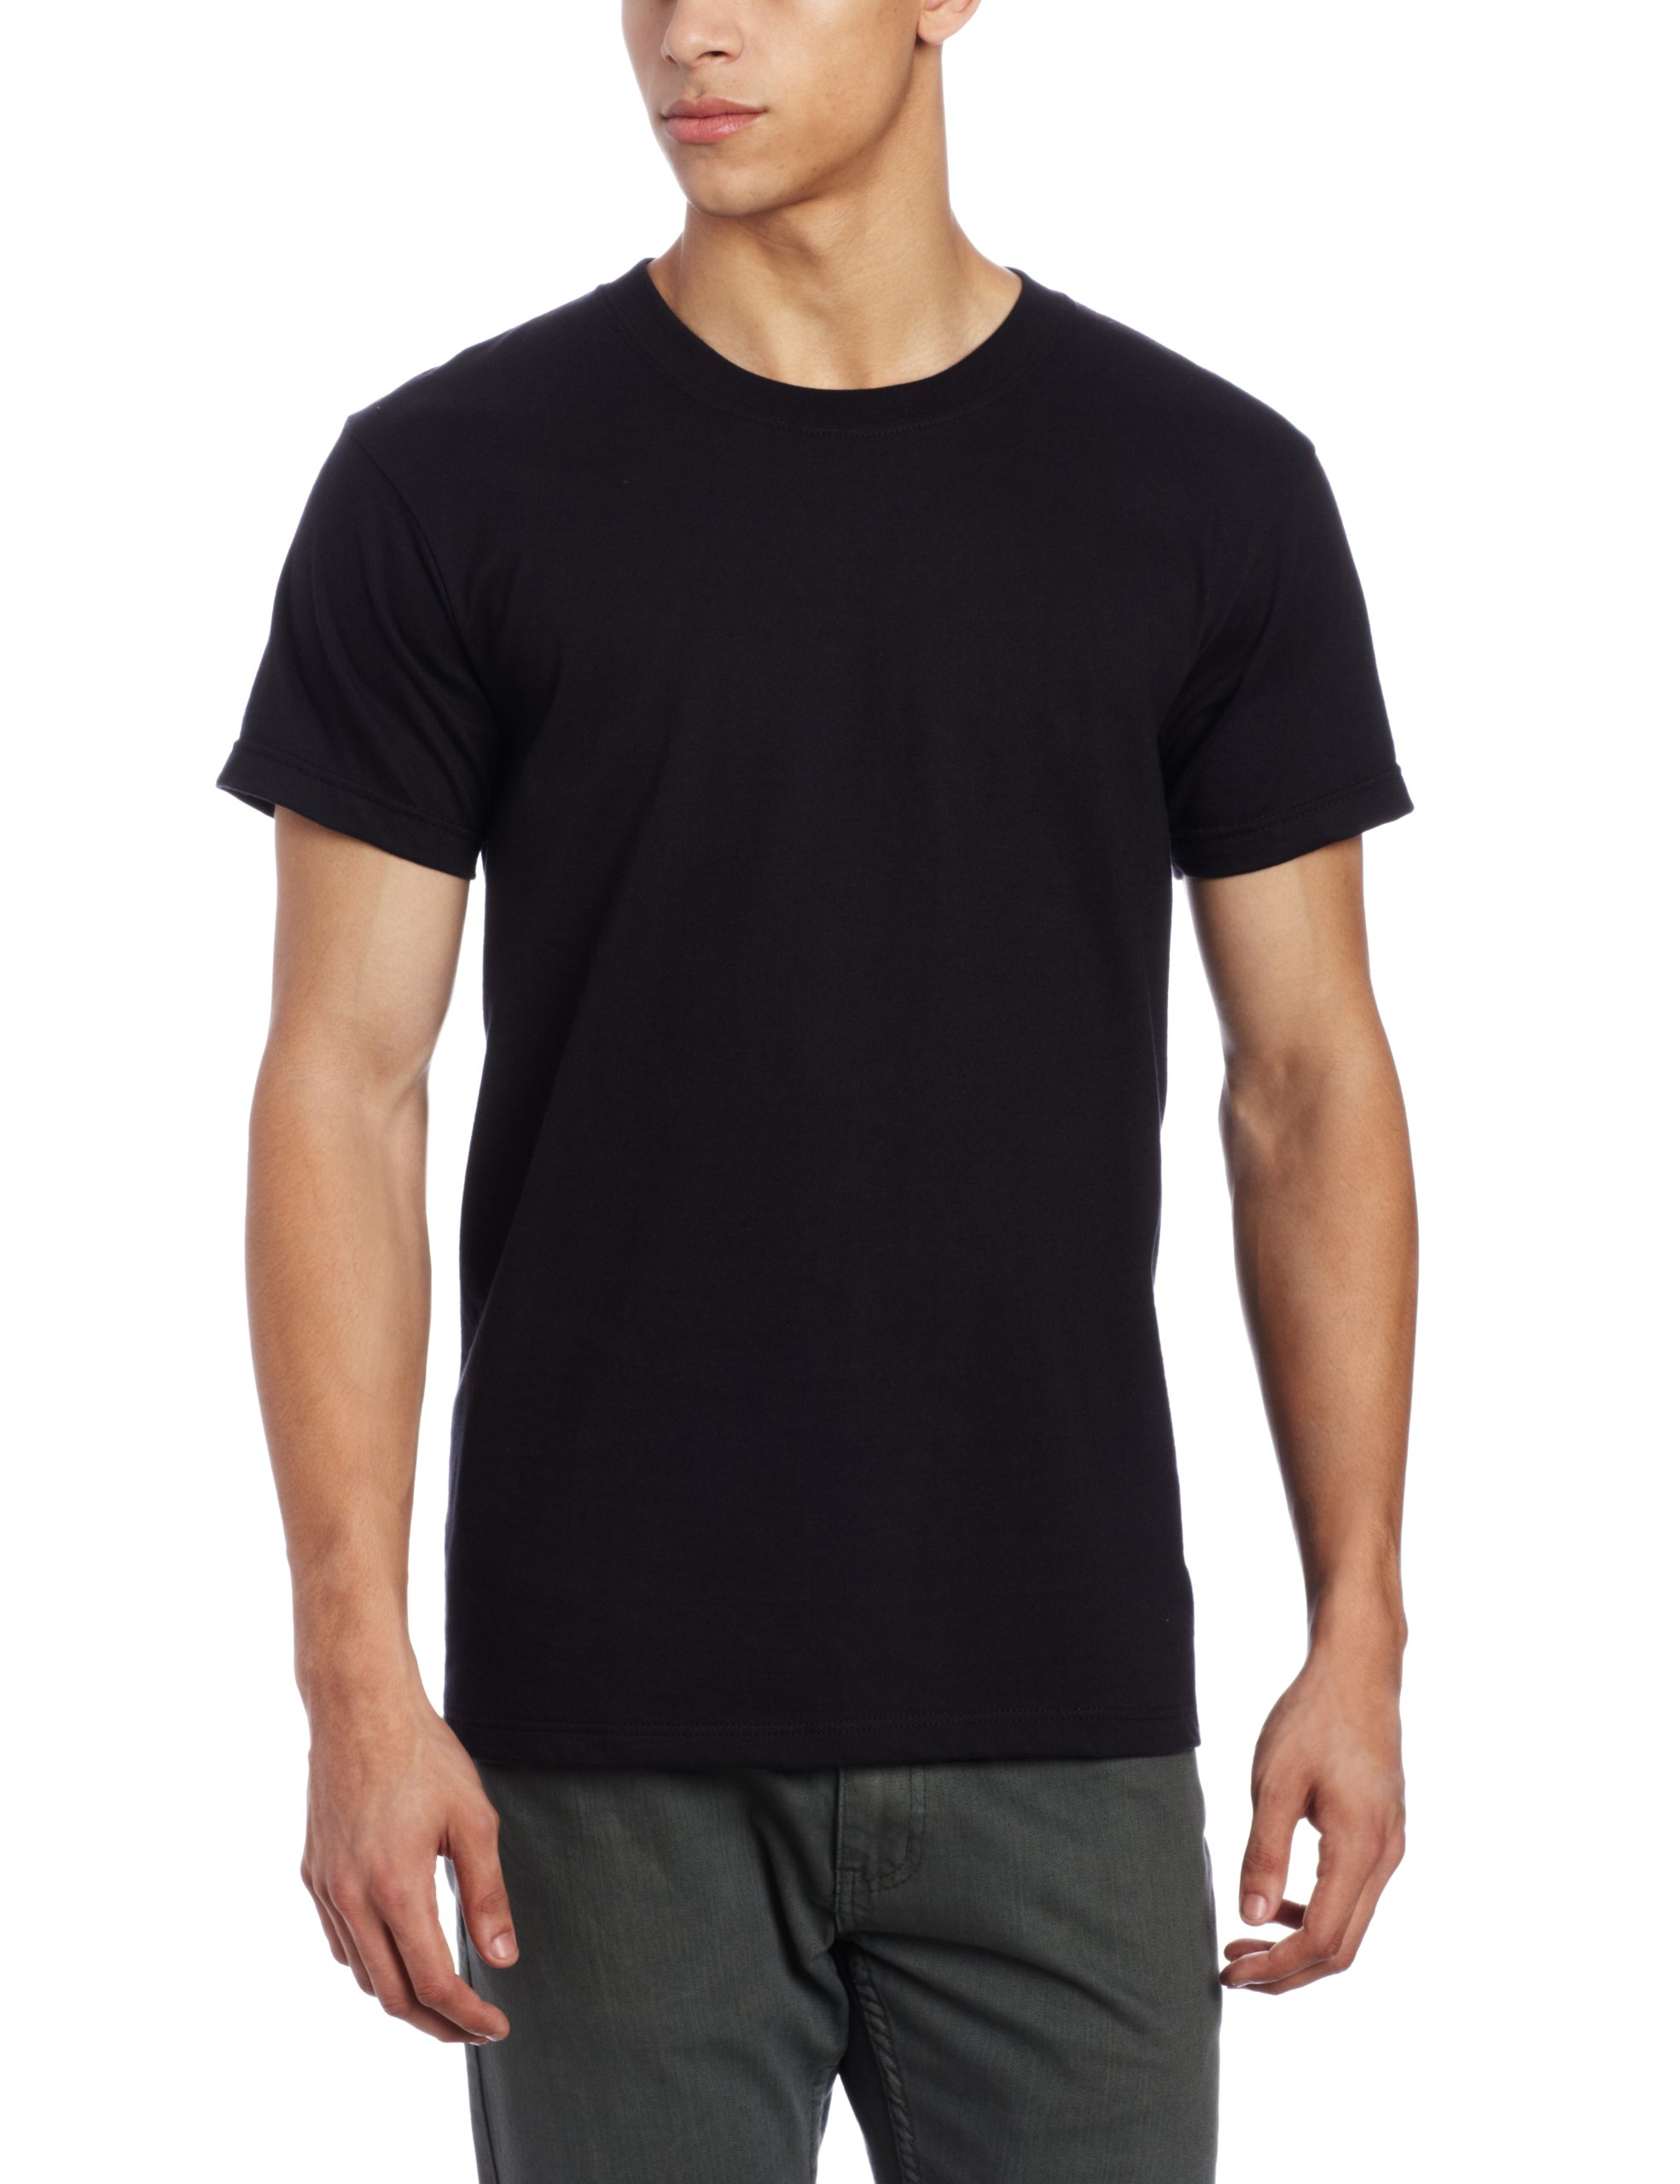 Naked & Famous Denim Men's T-Shirt, Black Ringspun Cotton, Large